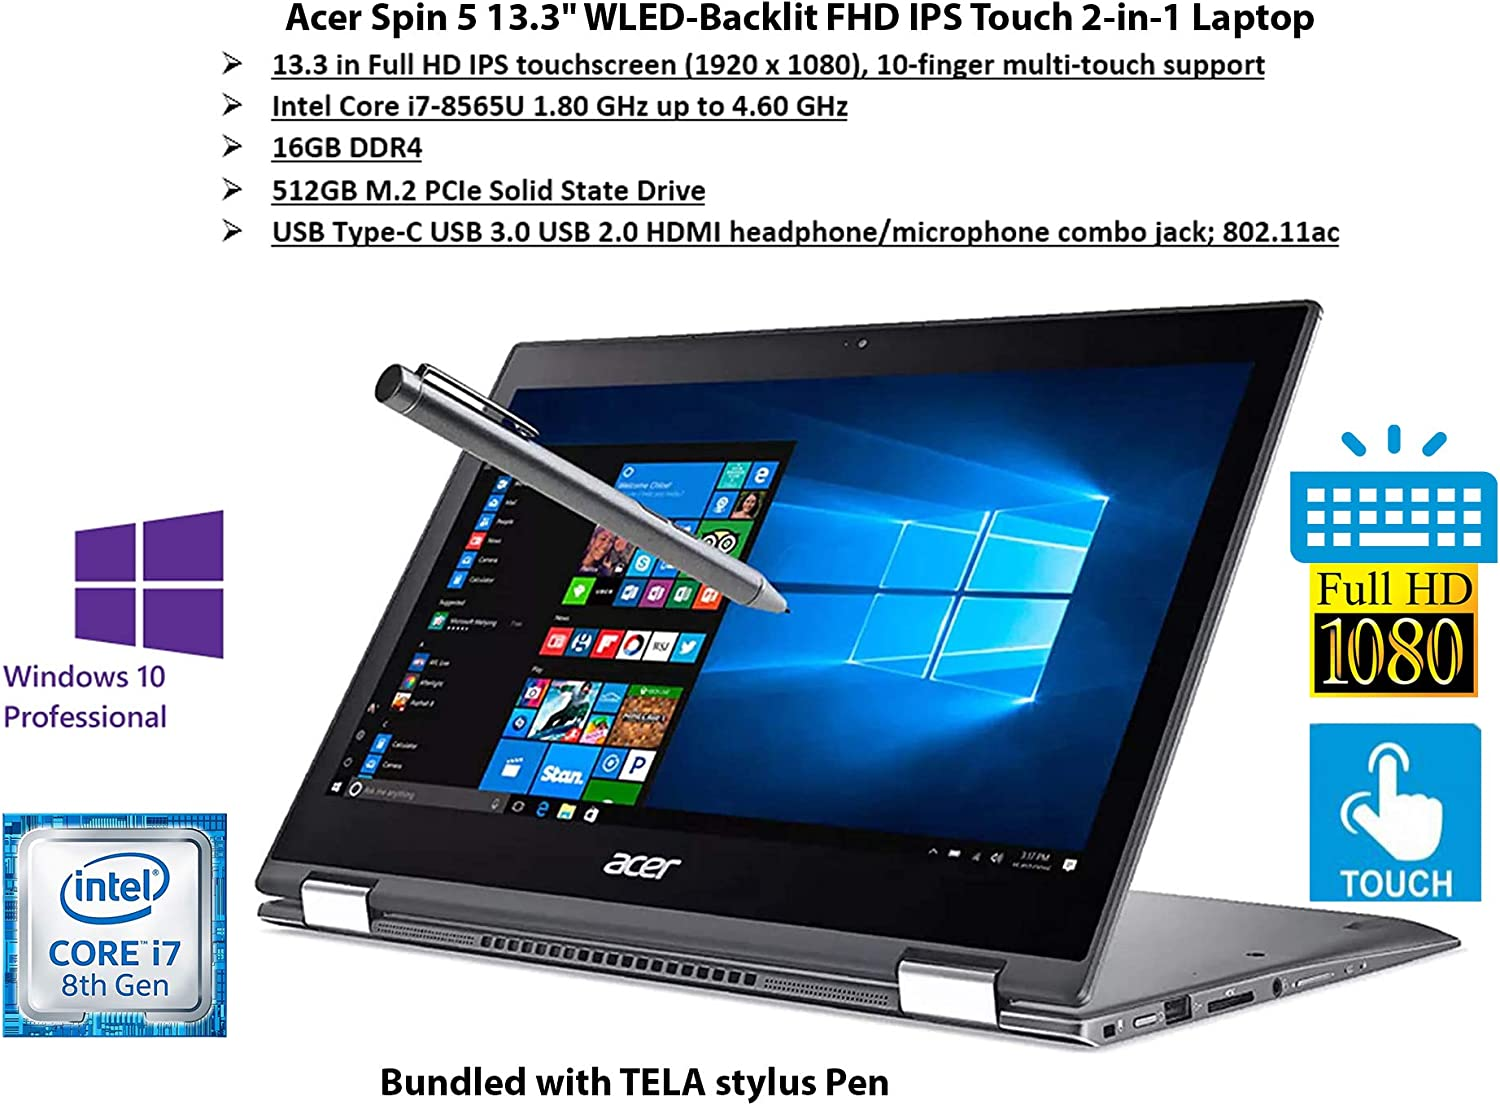 2020 Newest Acer Spin 5 SP513-53N 2-in-1 PC, 13.3 in Full HD IPS Touchscreen (1920 x 1080), Intel Core i7-8565U up to 4.60 GHz, 16GB RAM, 512GB SSD, Webcam, Gray, Win 10 Pro | Tela Stylus Pen